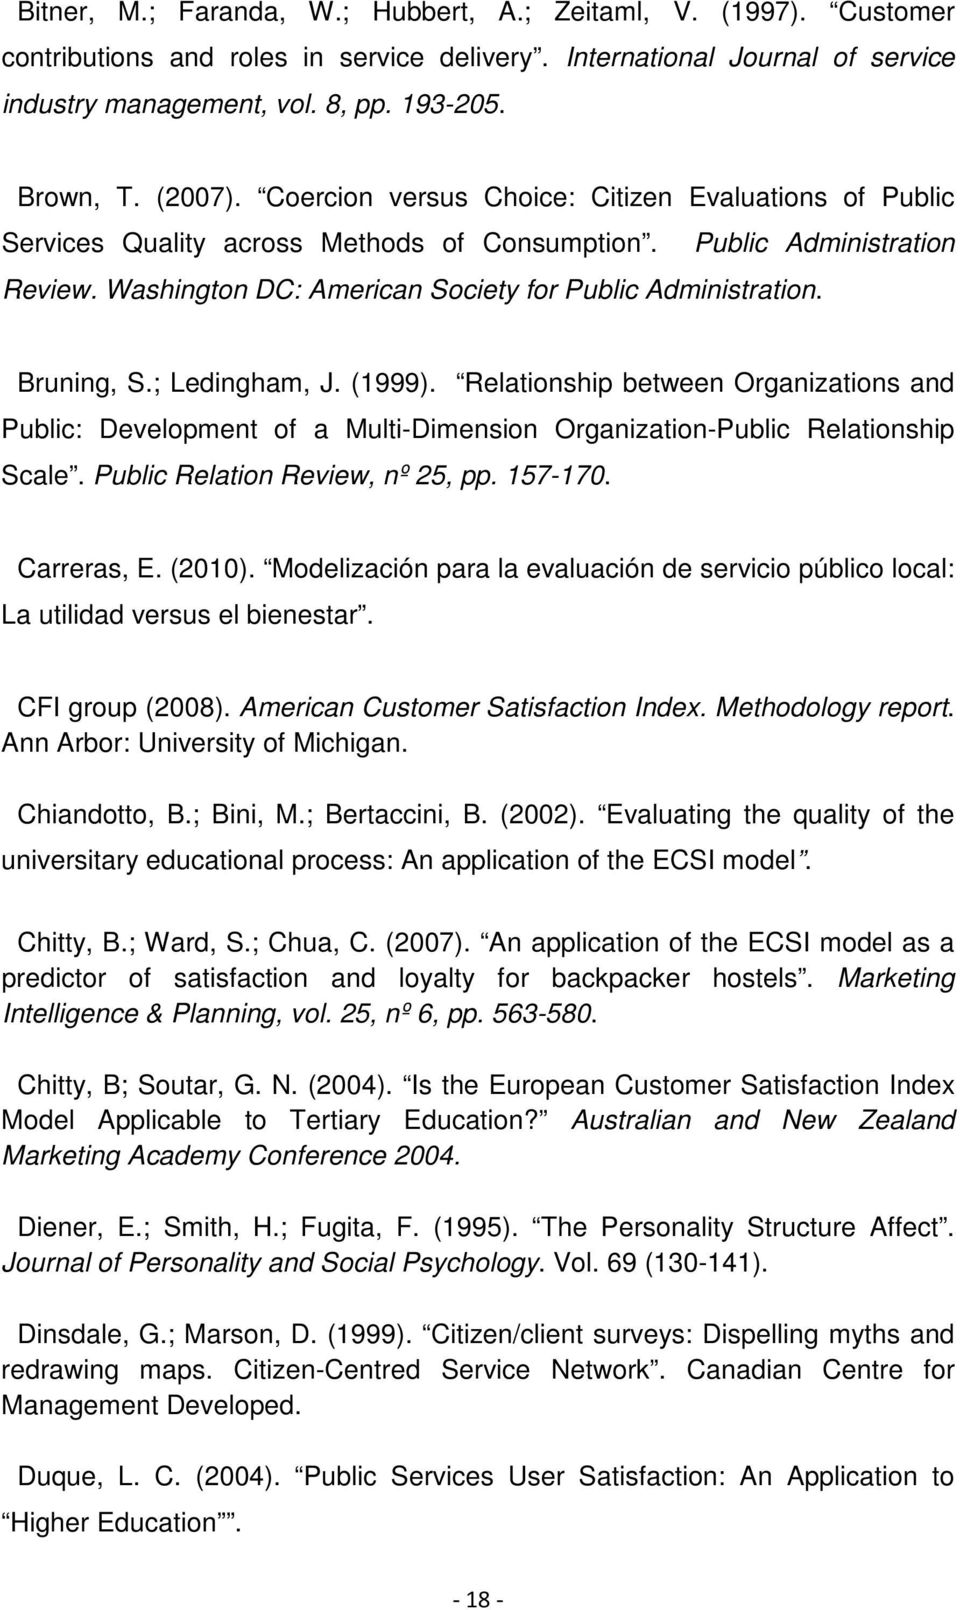 Bruning, S.; Ledingham, J. (1999). Relationship between Organizations and Public: Development of a Multi-Dimension Organization-Public Relationship Scale. Public Relation Review, nº 25, pp. 157-170.